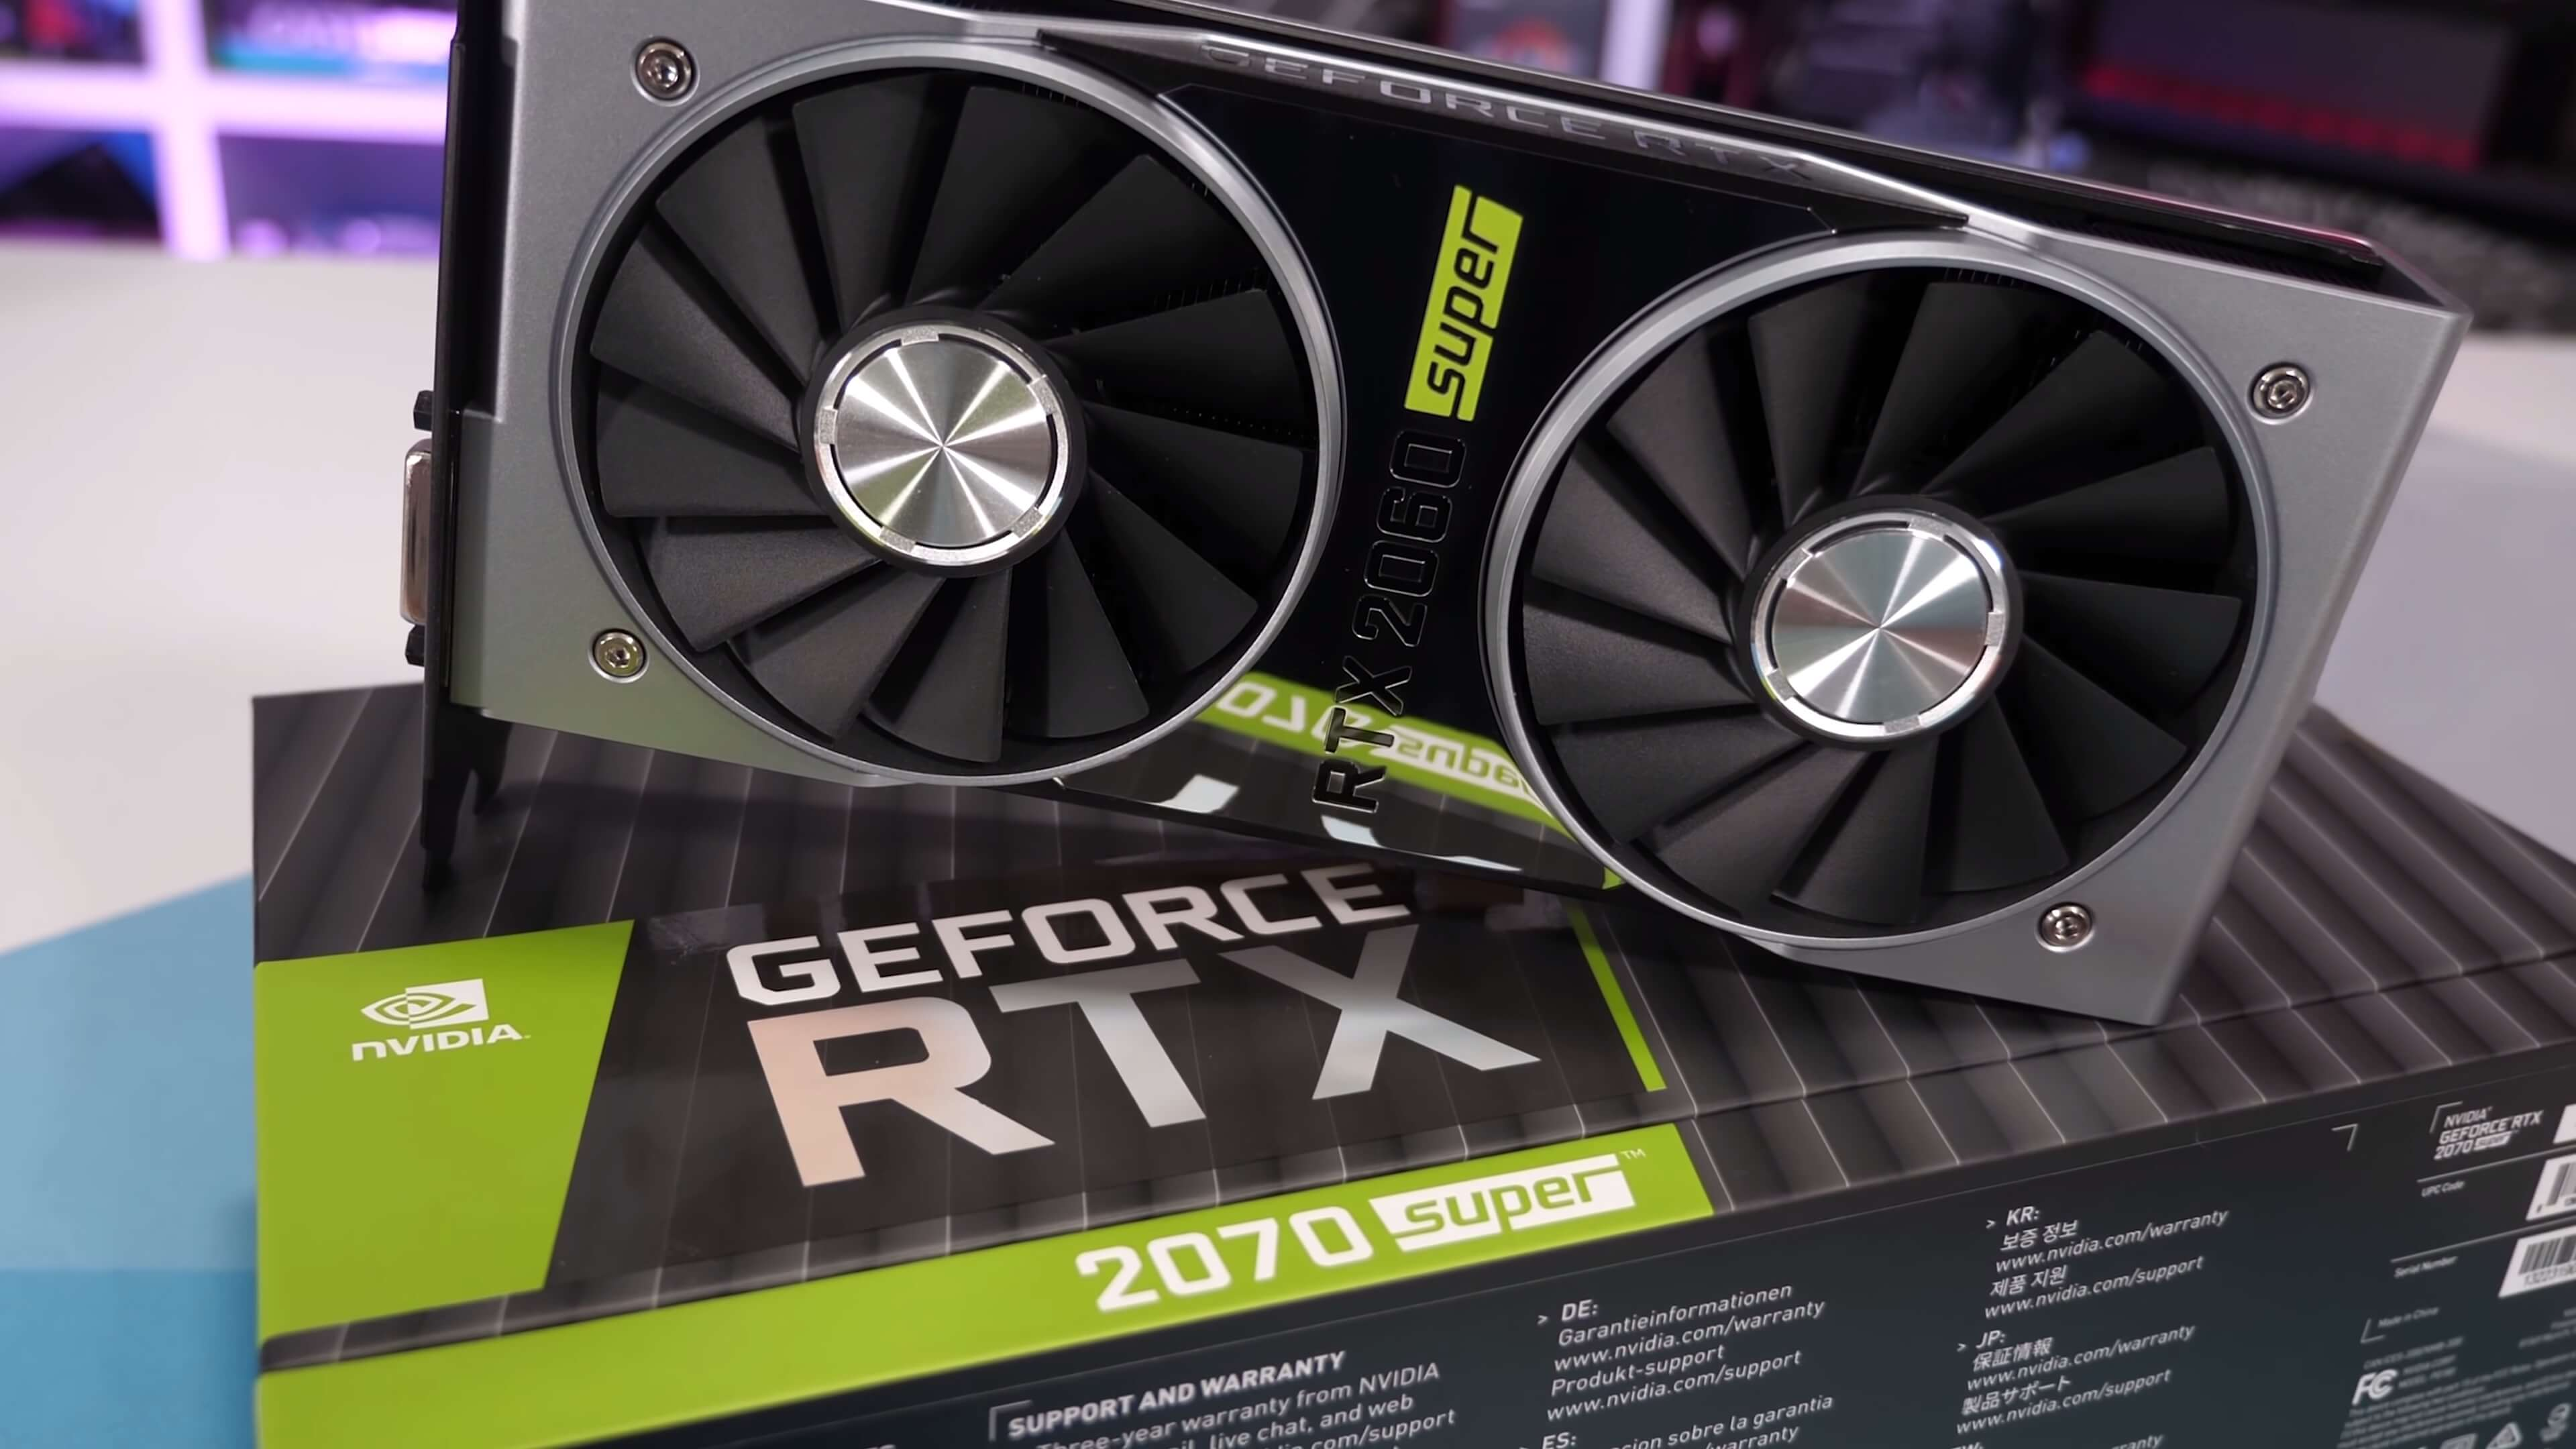 Nvidia GeForce RTX 2070 Super and RTX 2060 Super Review